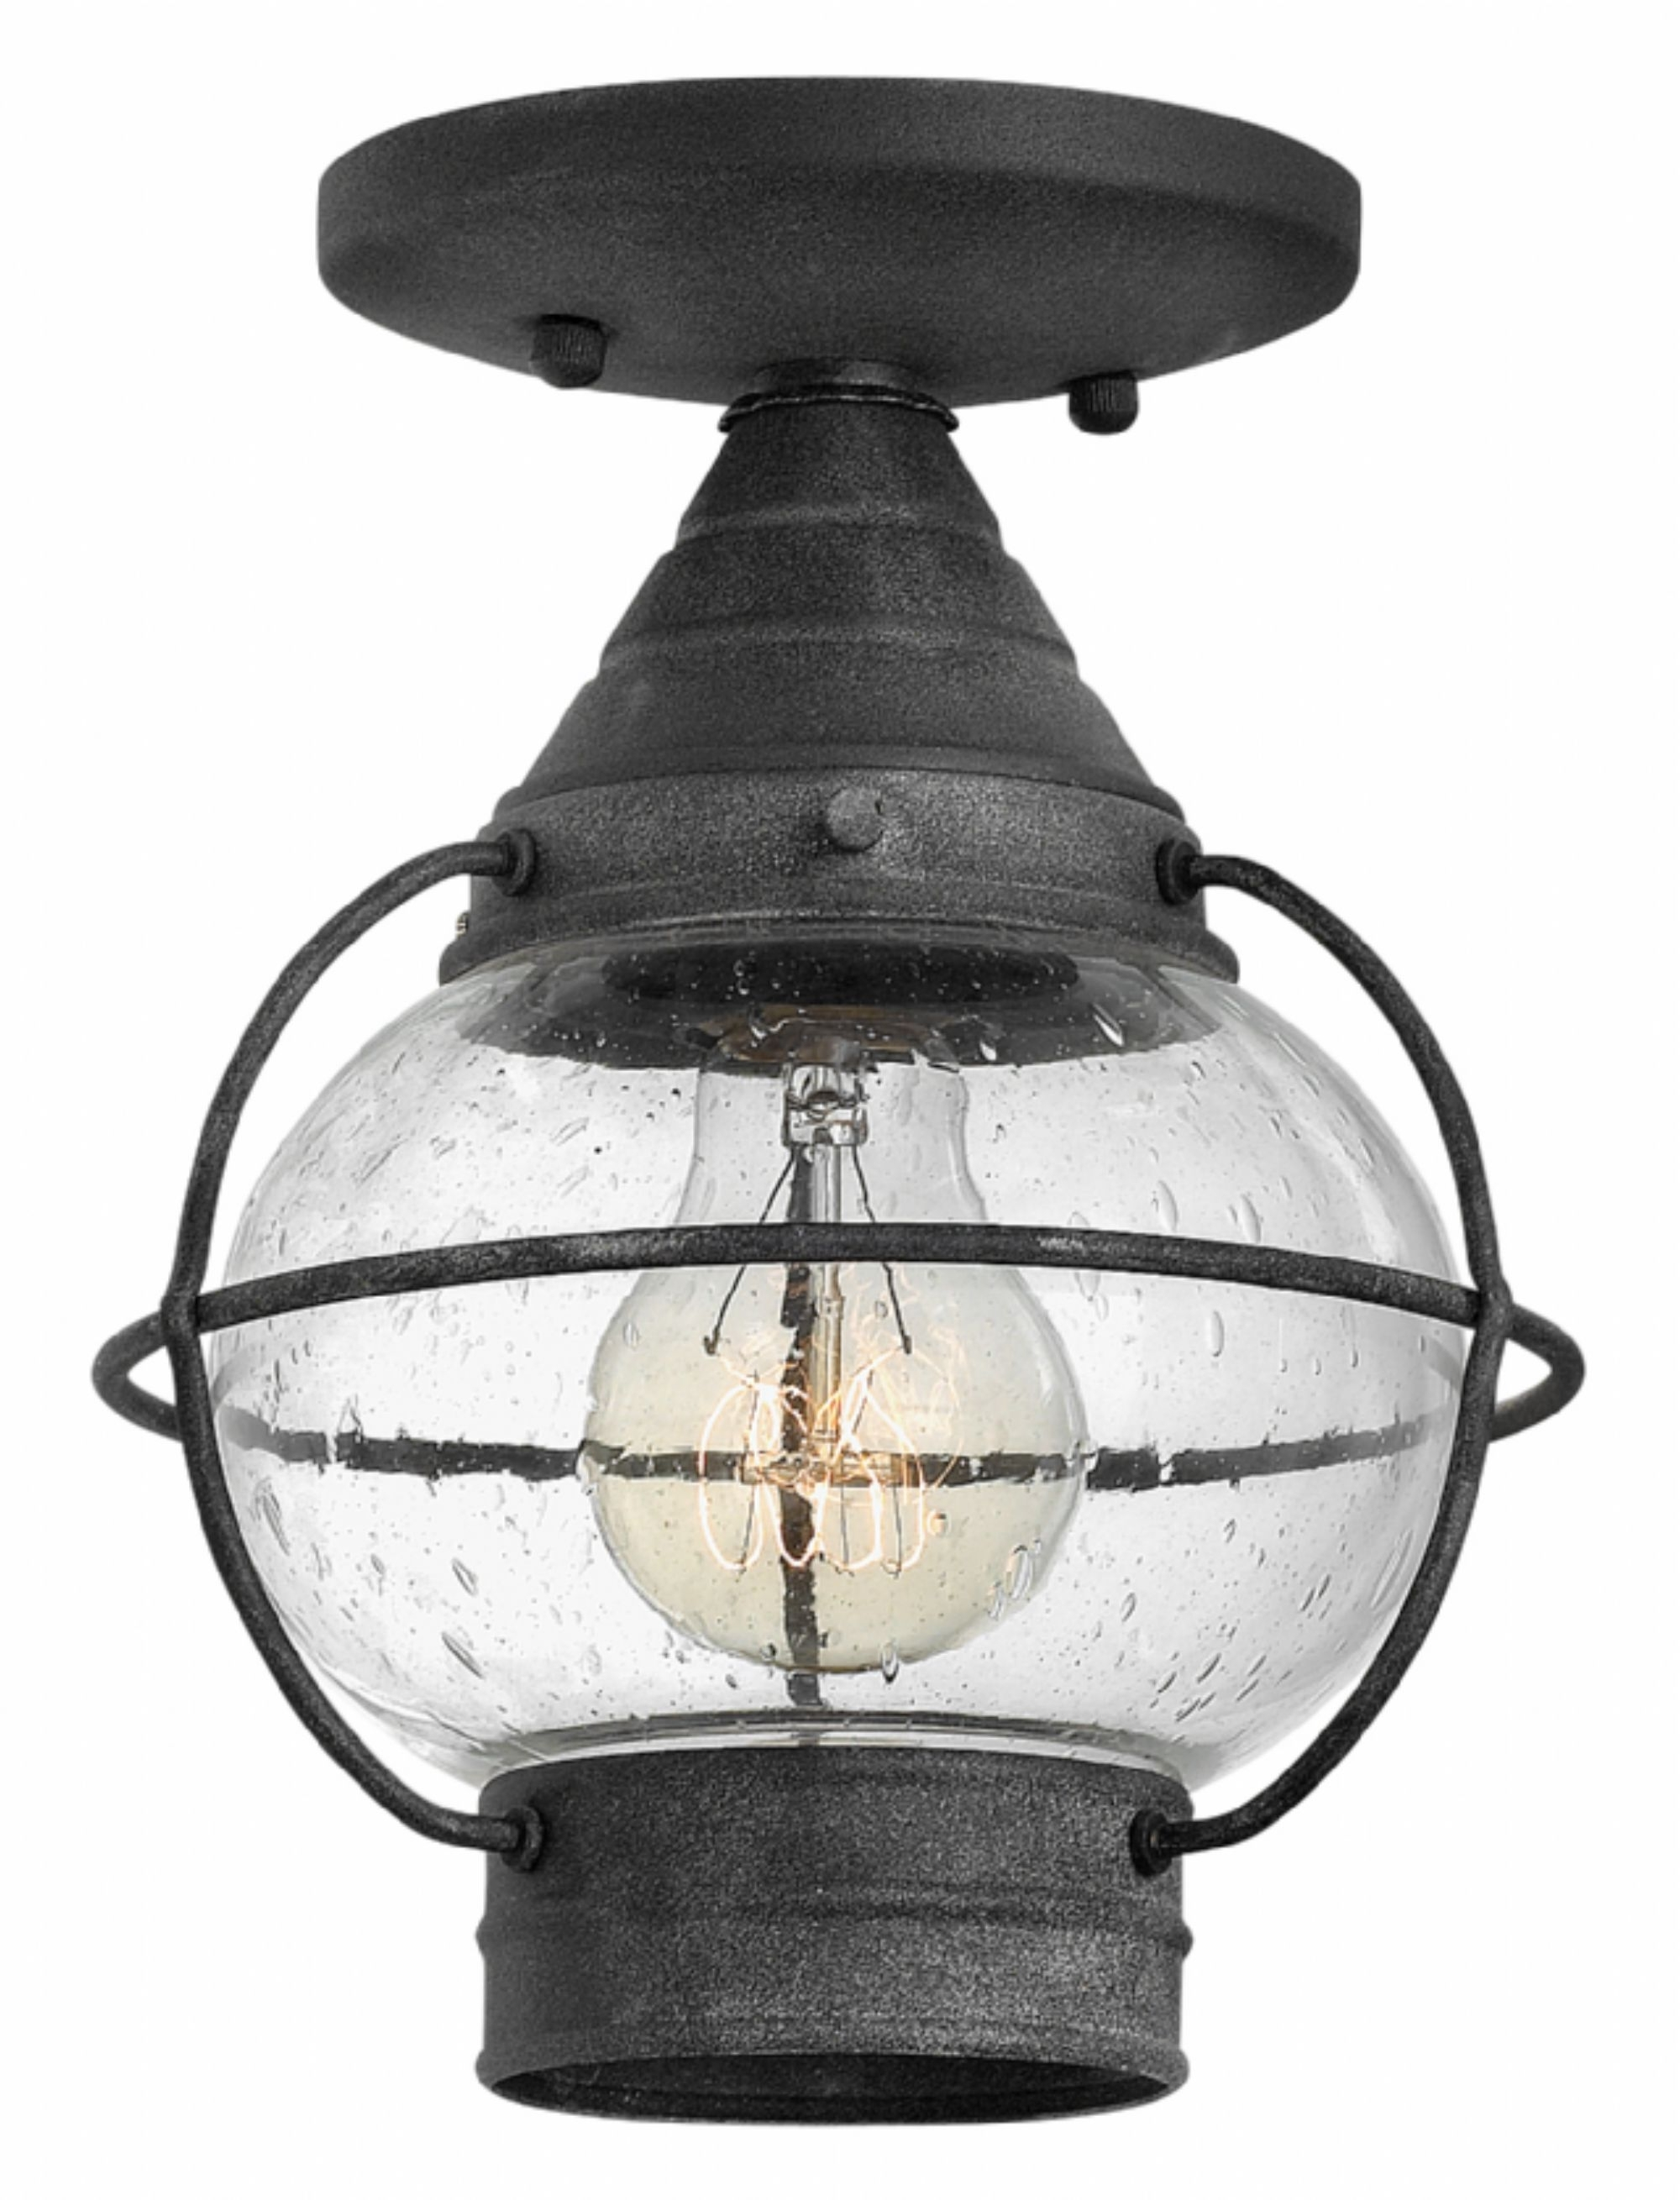 Popular Aged Zinc Cape Cod > Exterior Ceiling Mount For Hanging Porch Hinkley Lighting (View 16 of 20)